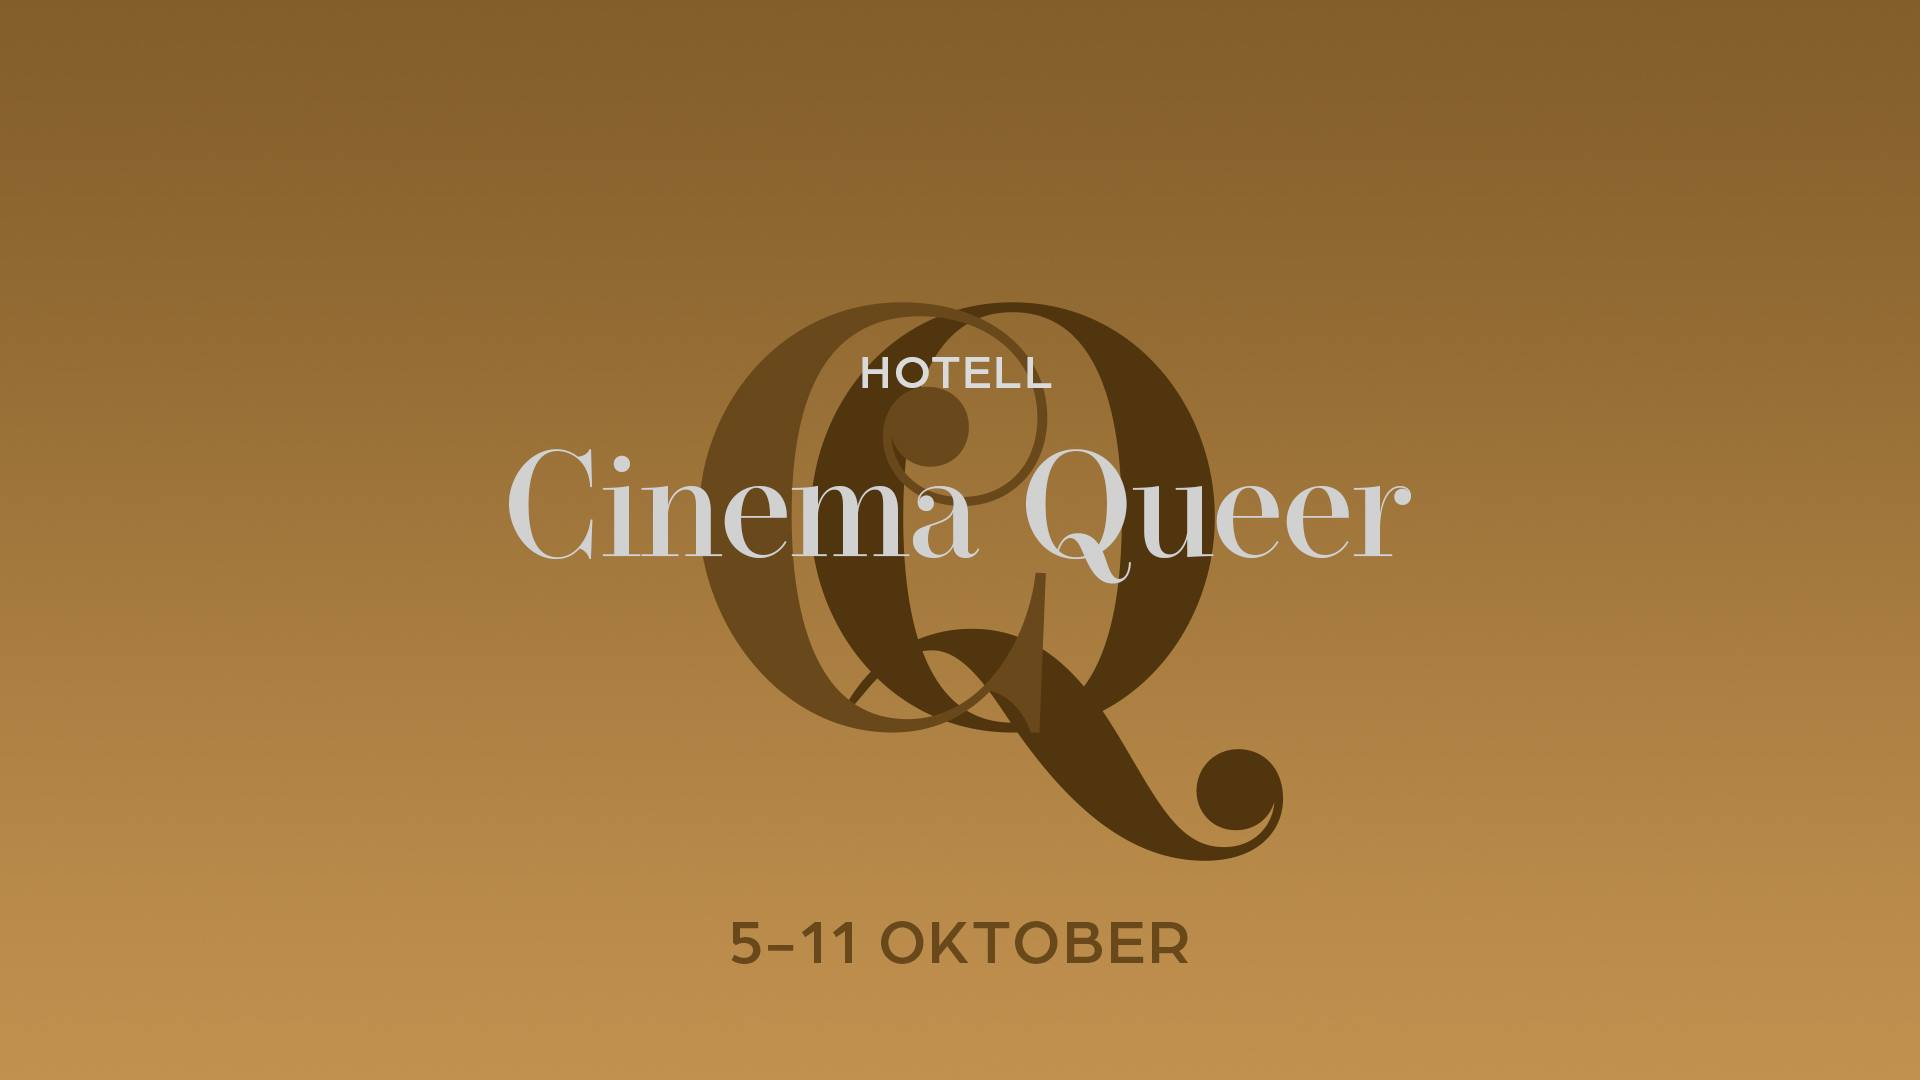 Hotell Cinema Queer